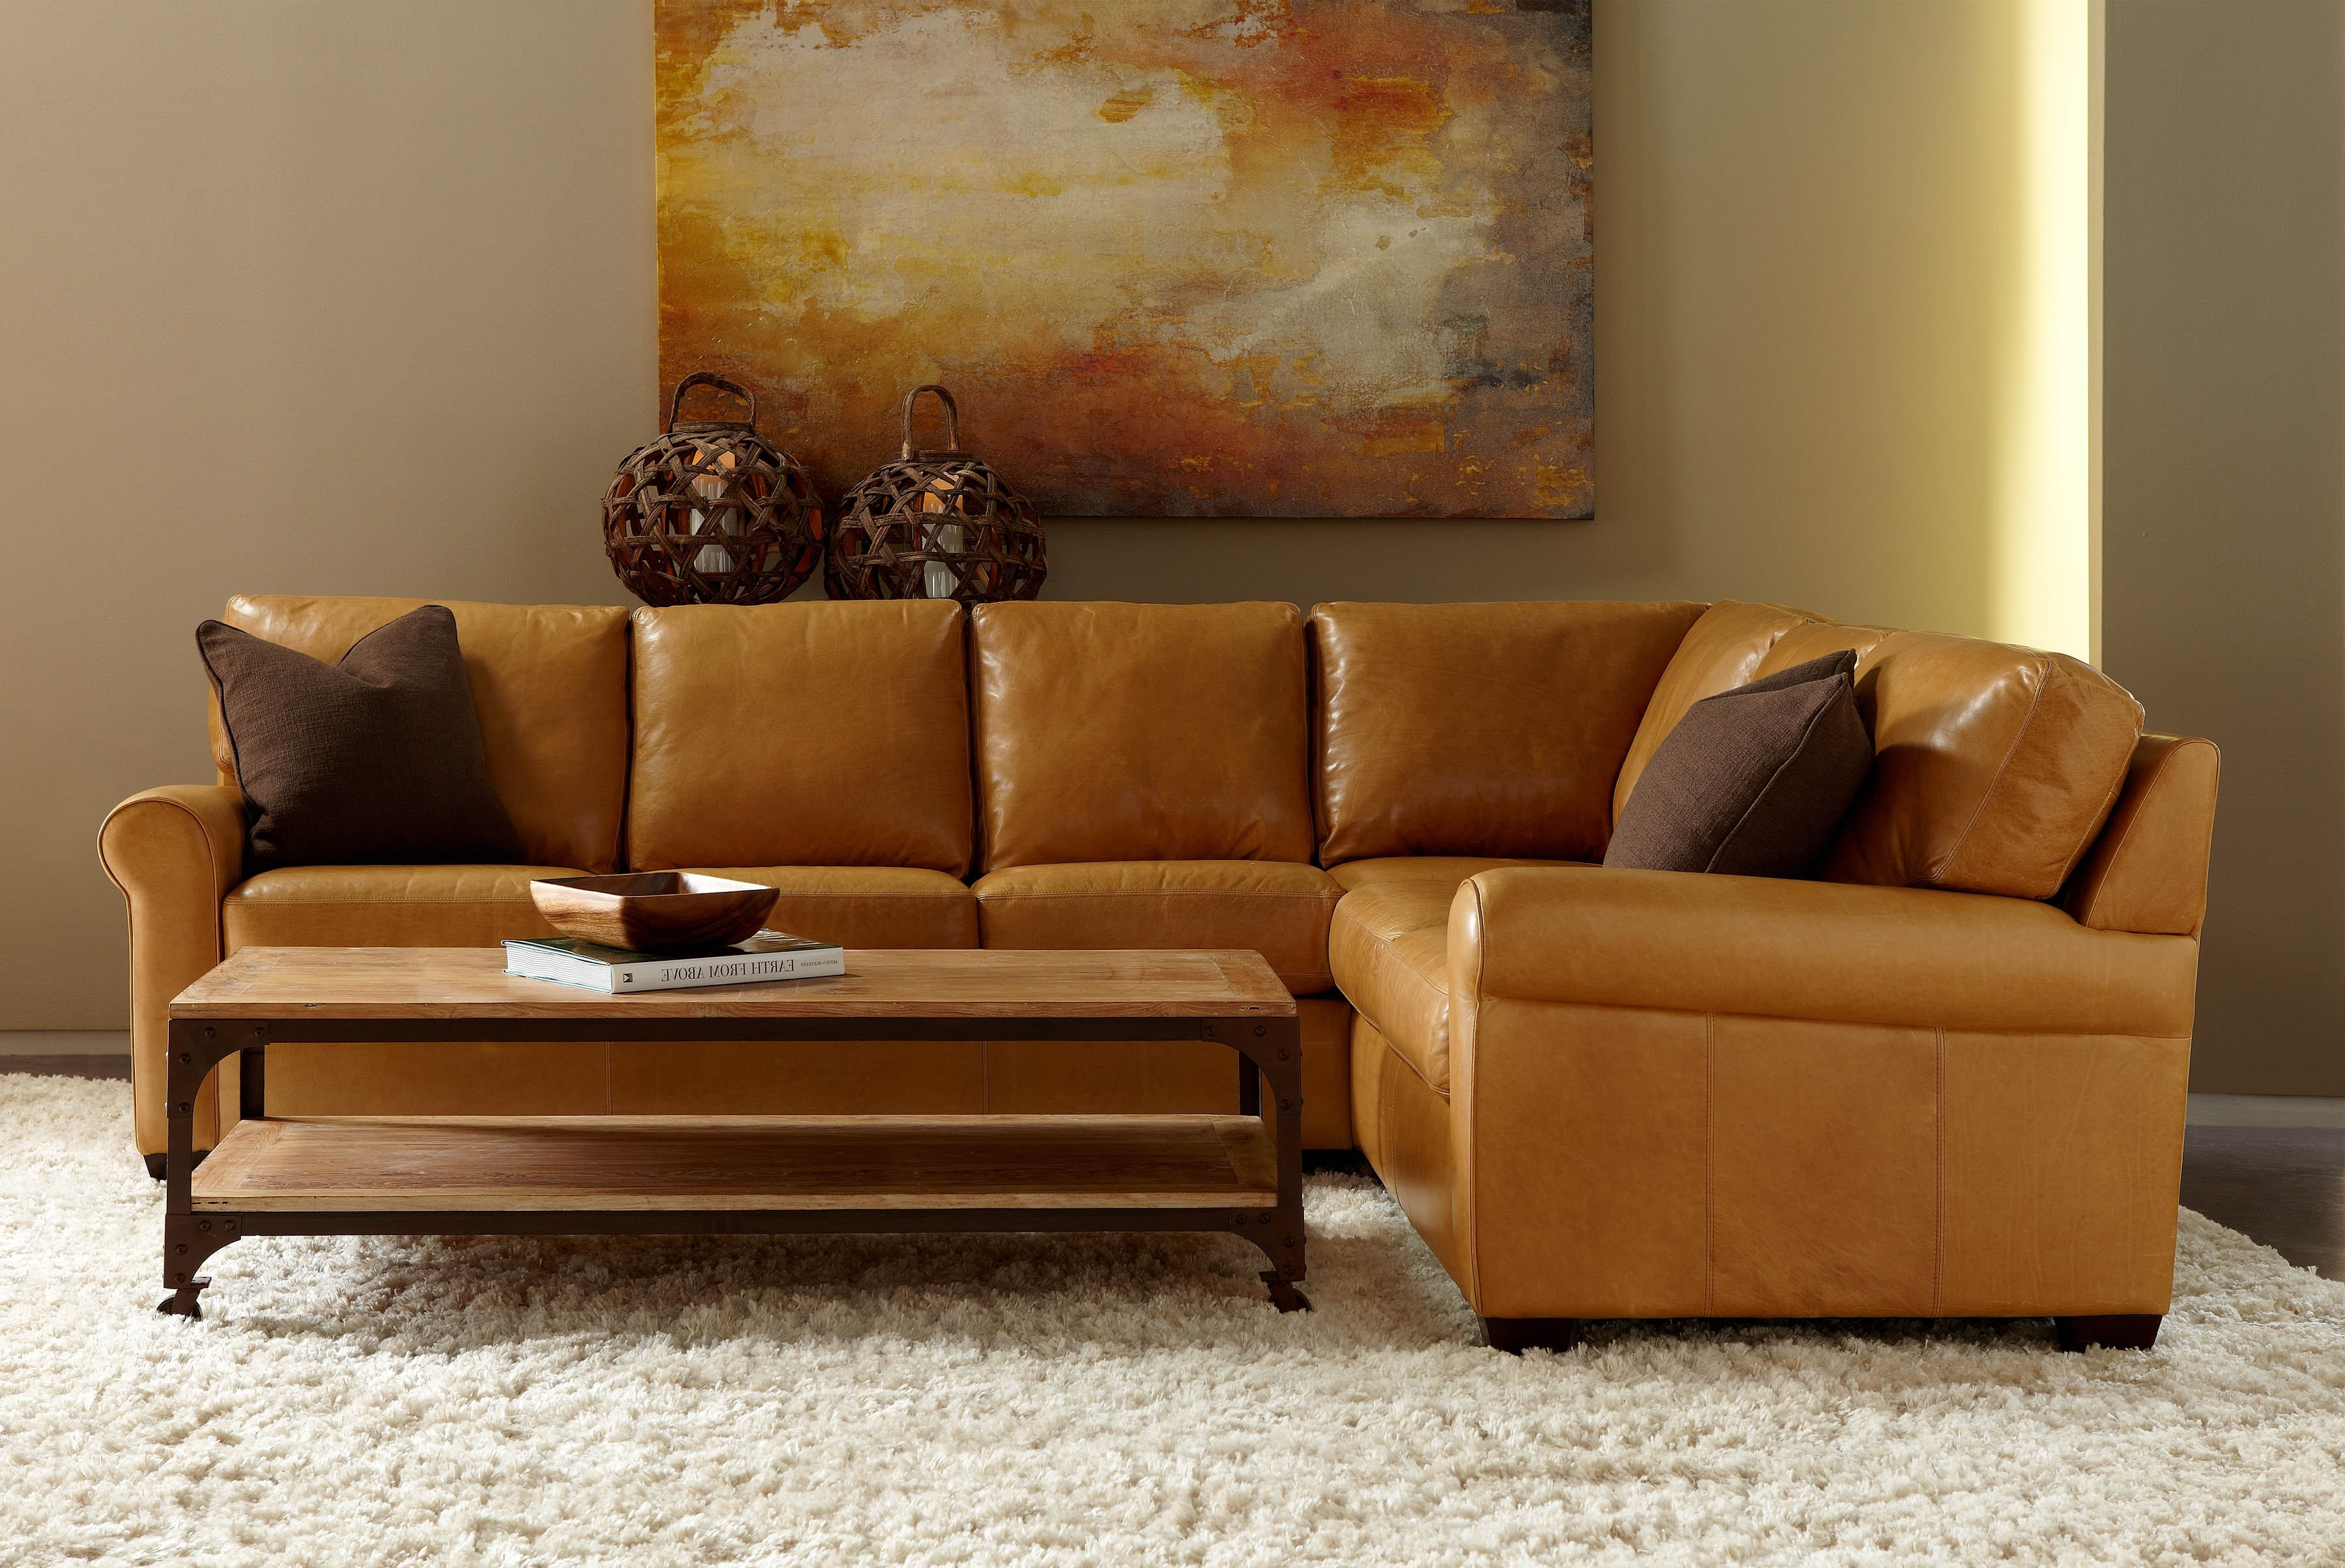 Fashionable Jordans Sectional Sofas Inside Sectional Sofas – Elegance And Style Tailored Just For Youand (View 11 of 15)